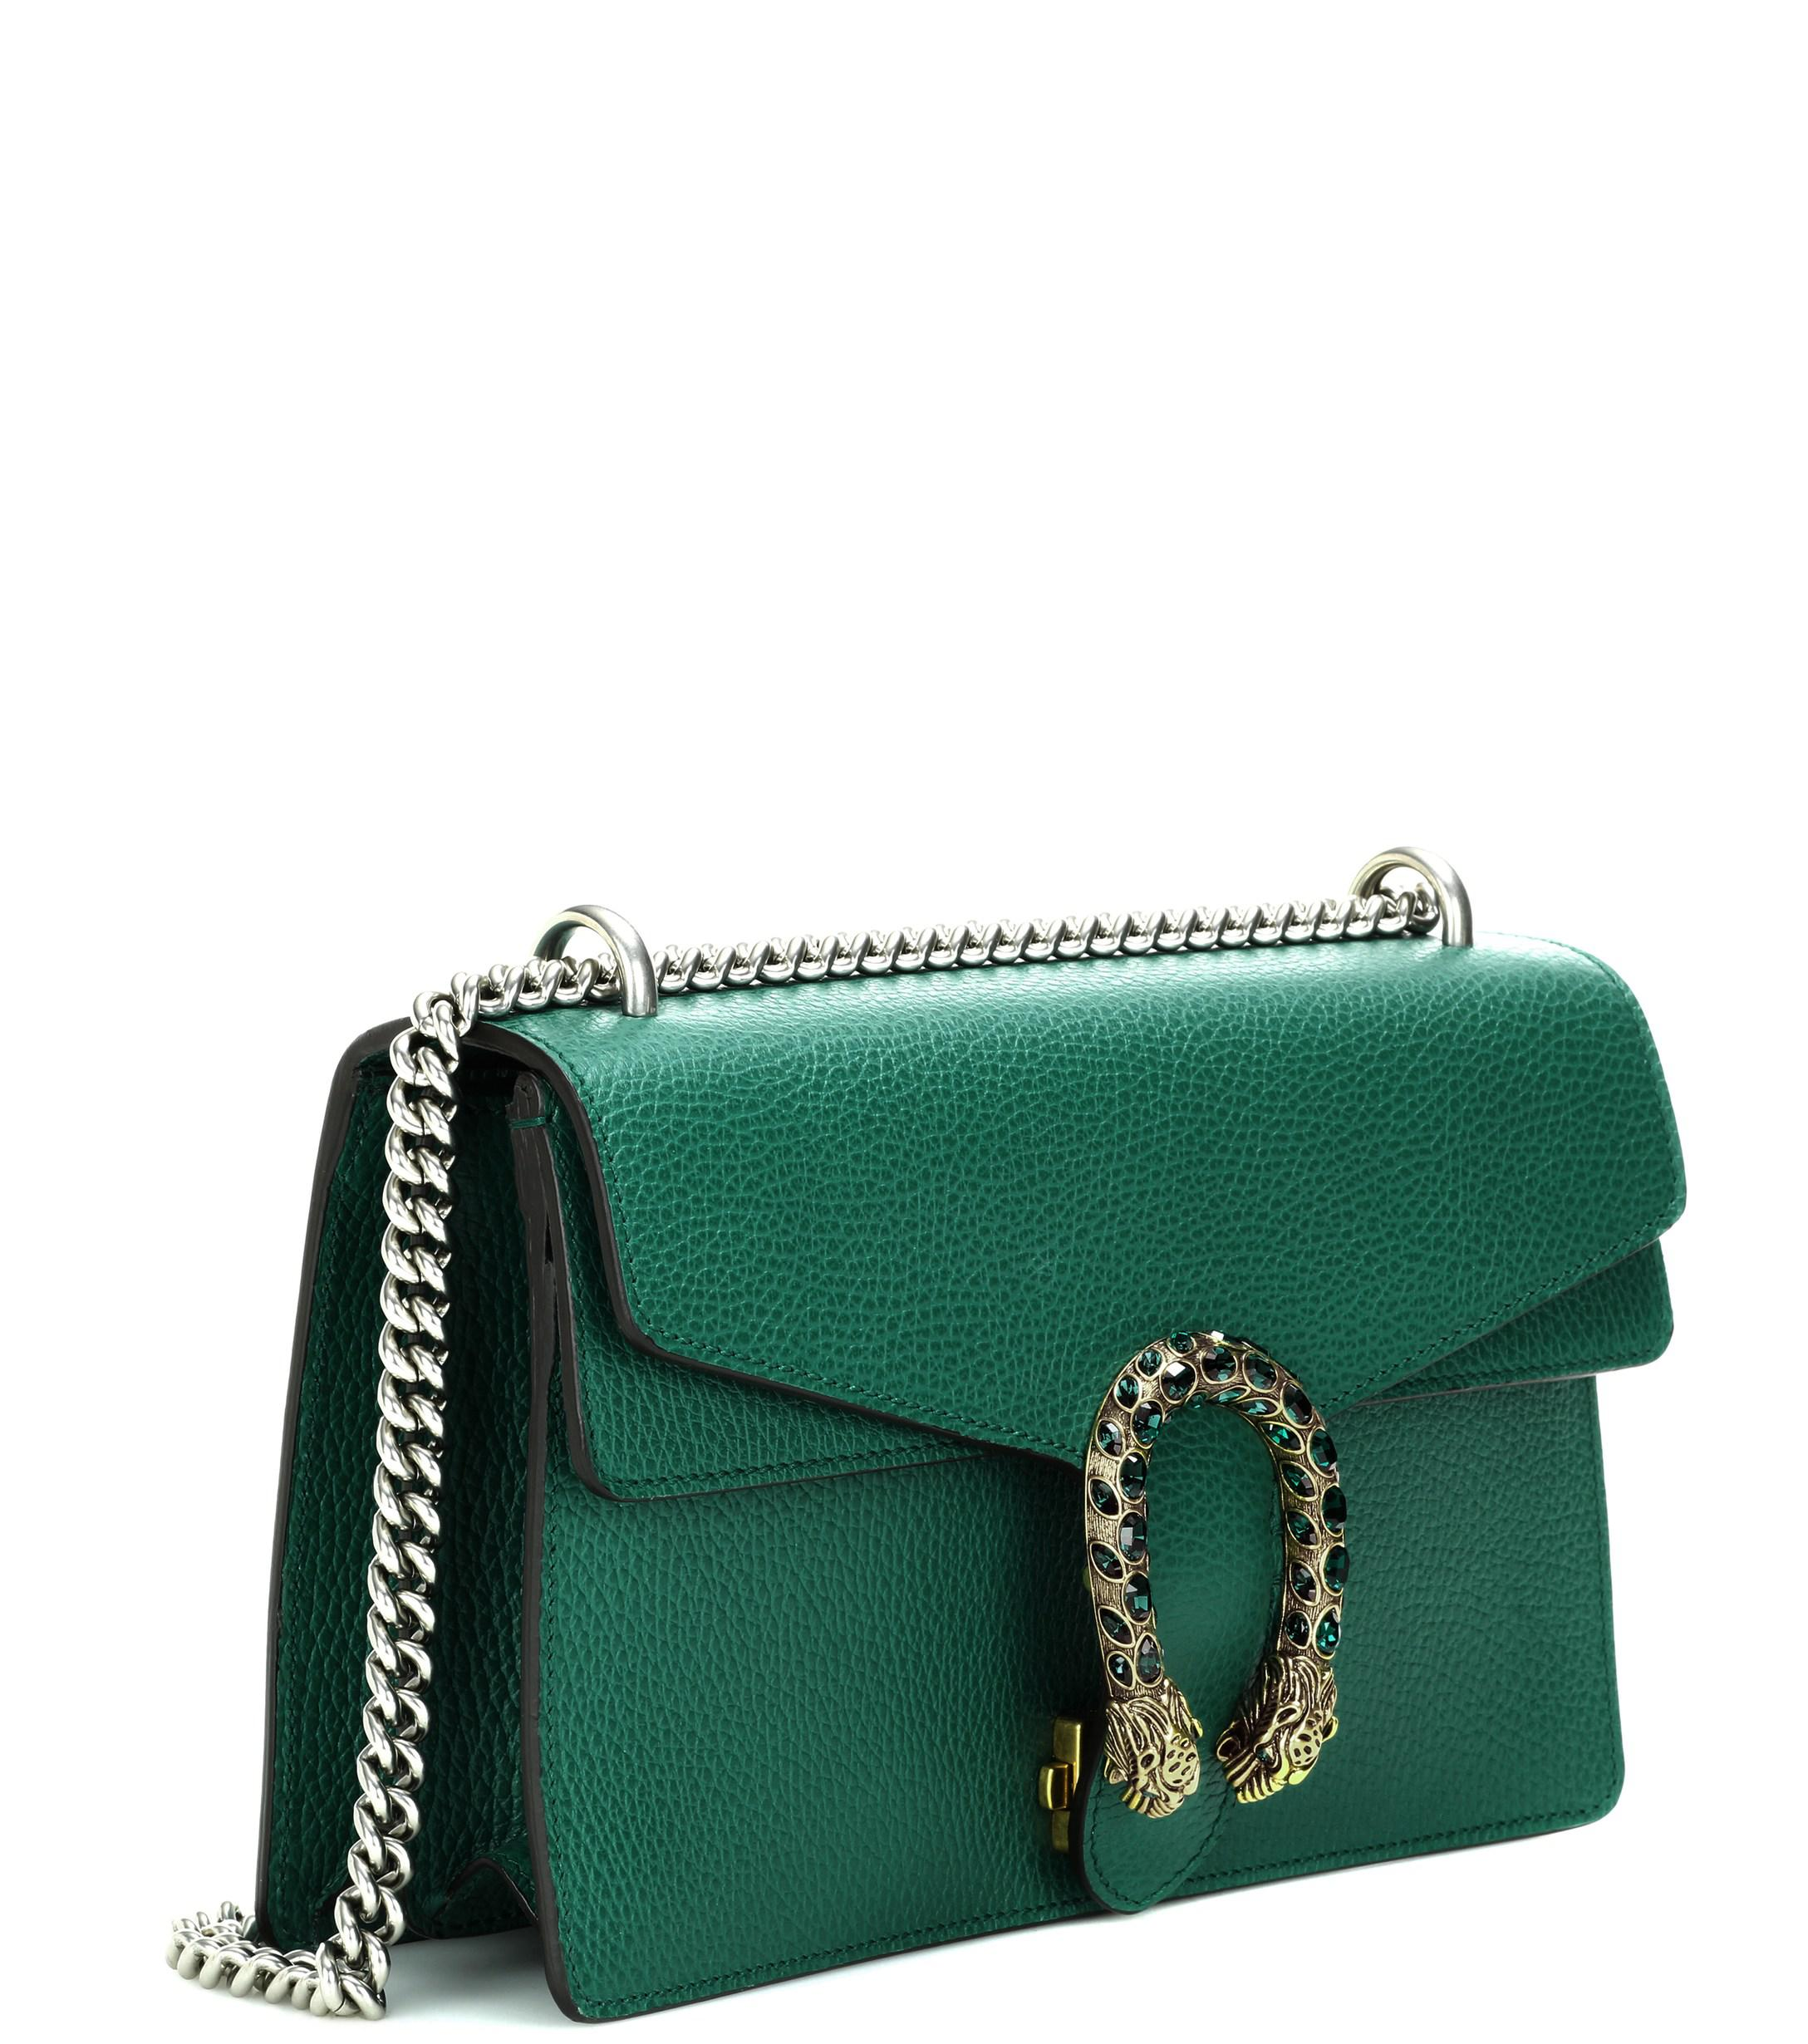 gucci dionysus small leather shoulder bag in emerald